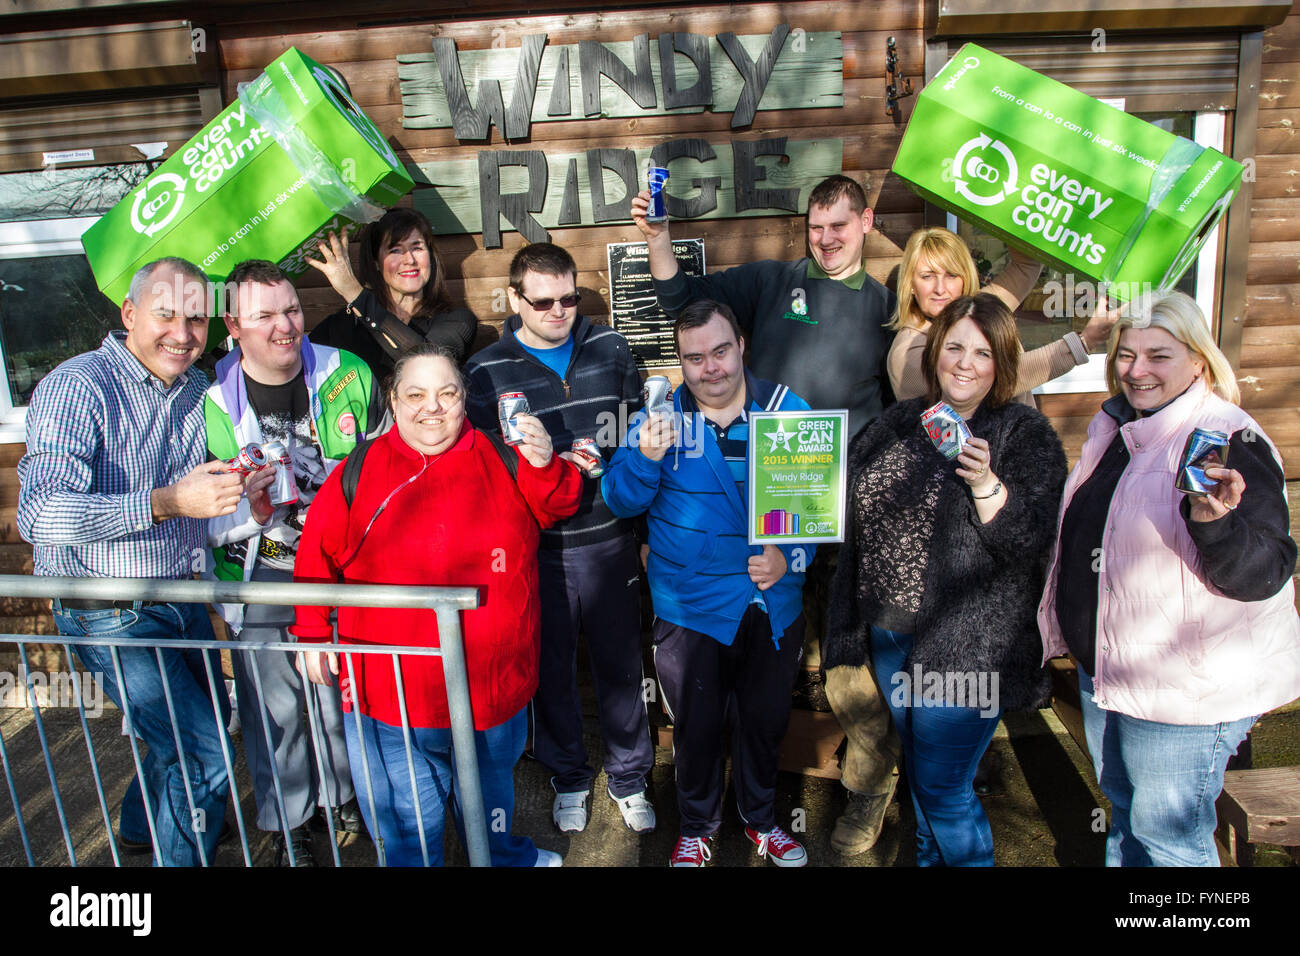 Windy Ridge allotment wins a award fro collecting cans - Stock Image